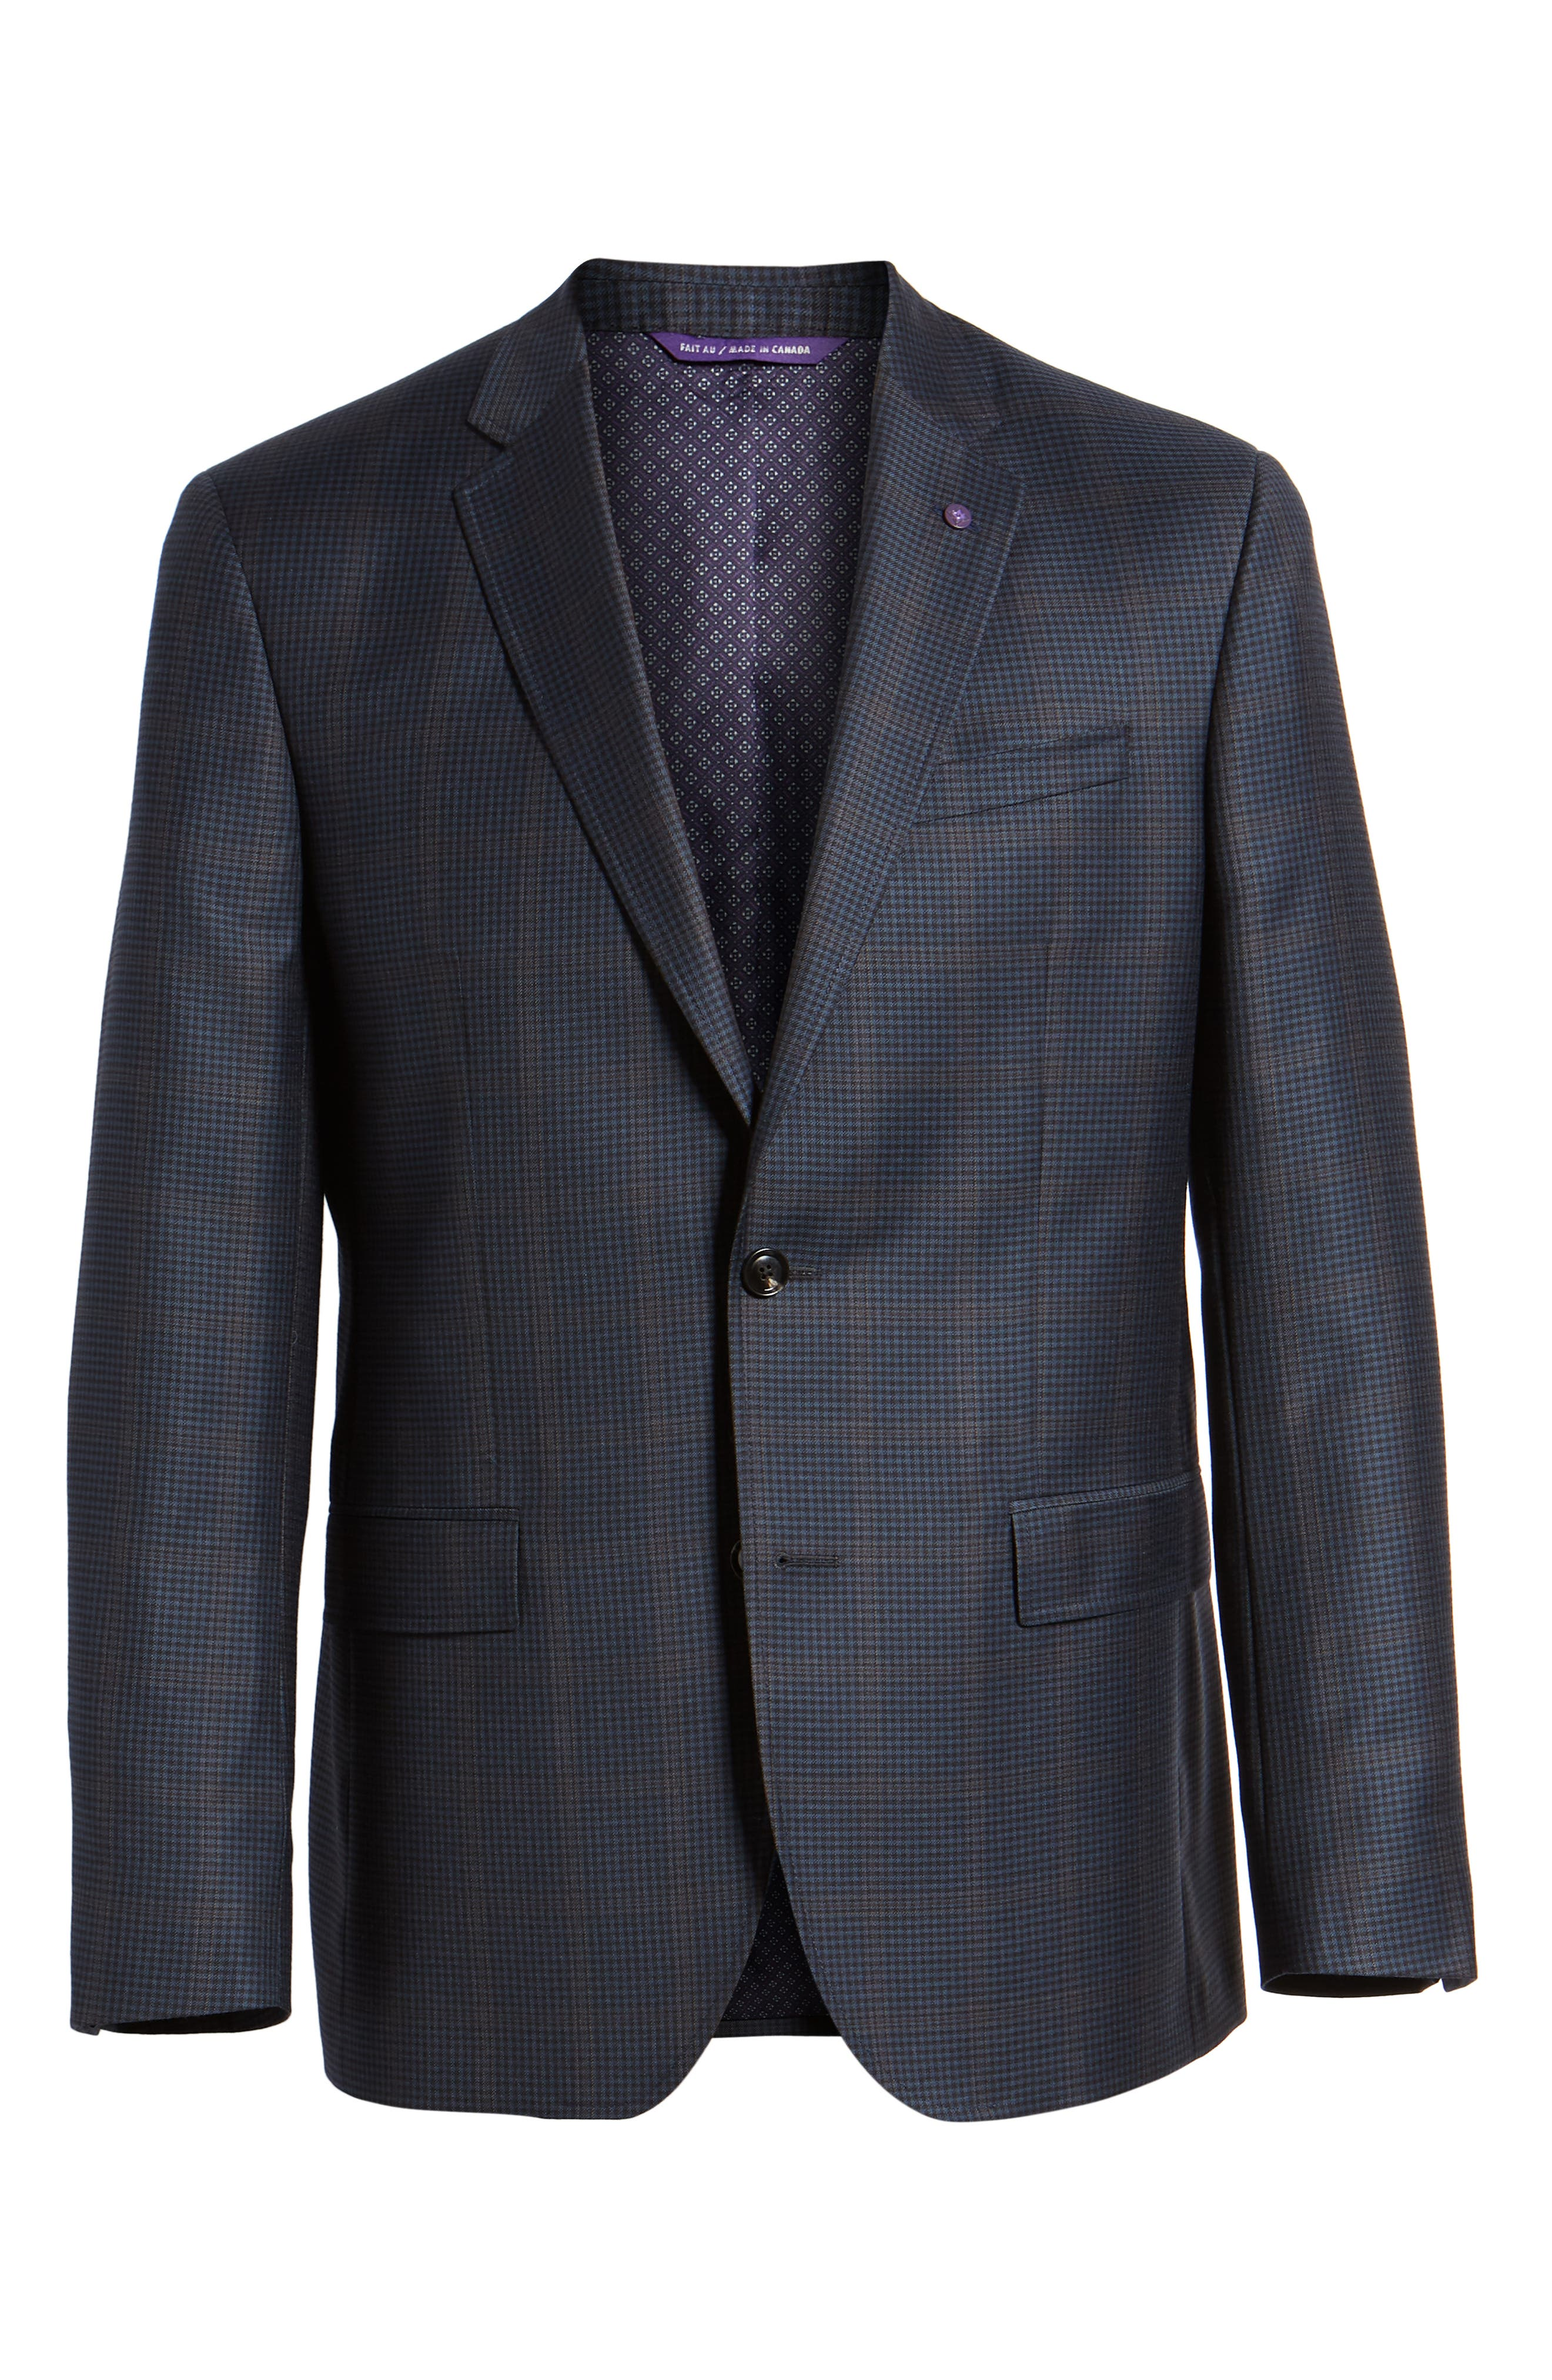 Jay Trim Fit Houndstooth Wool Sport Coat,                             Alternate thumbnail 6, color,                             Blue